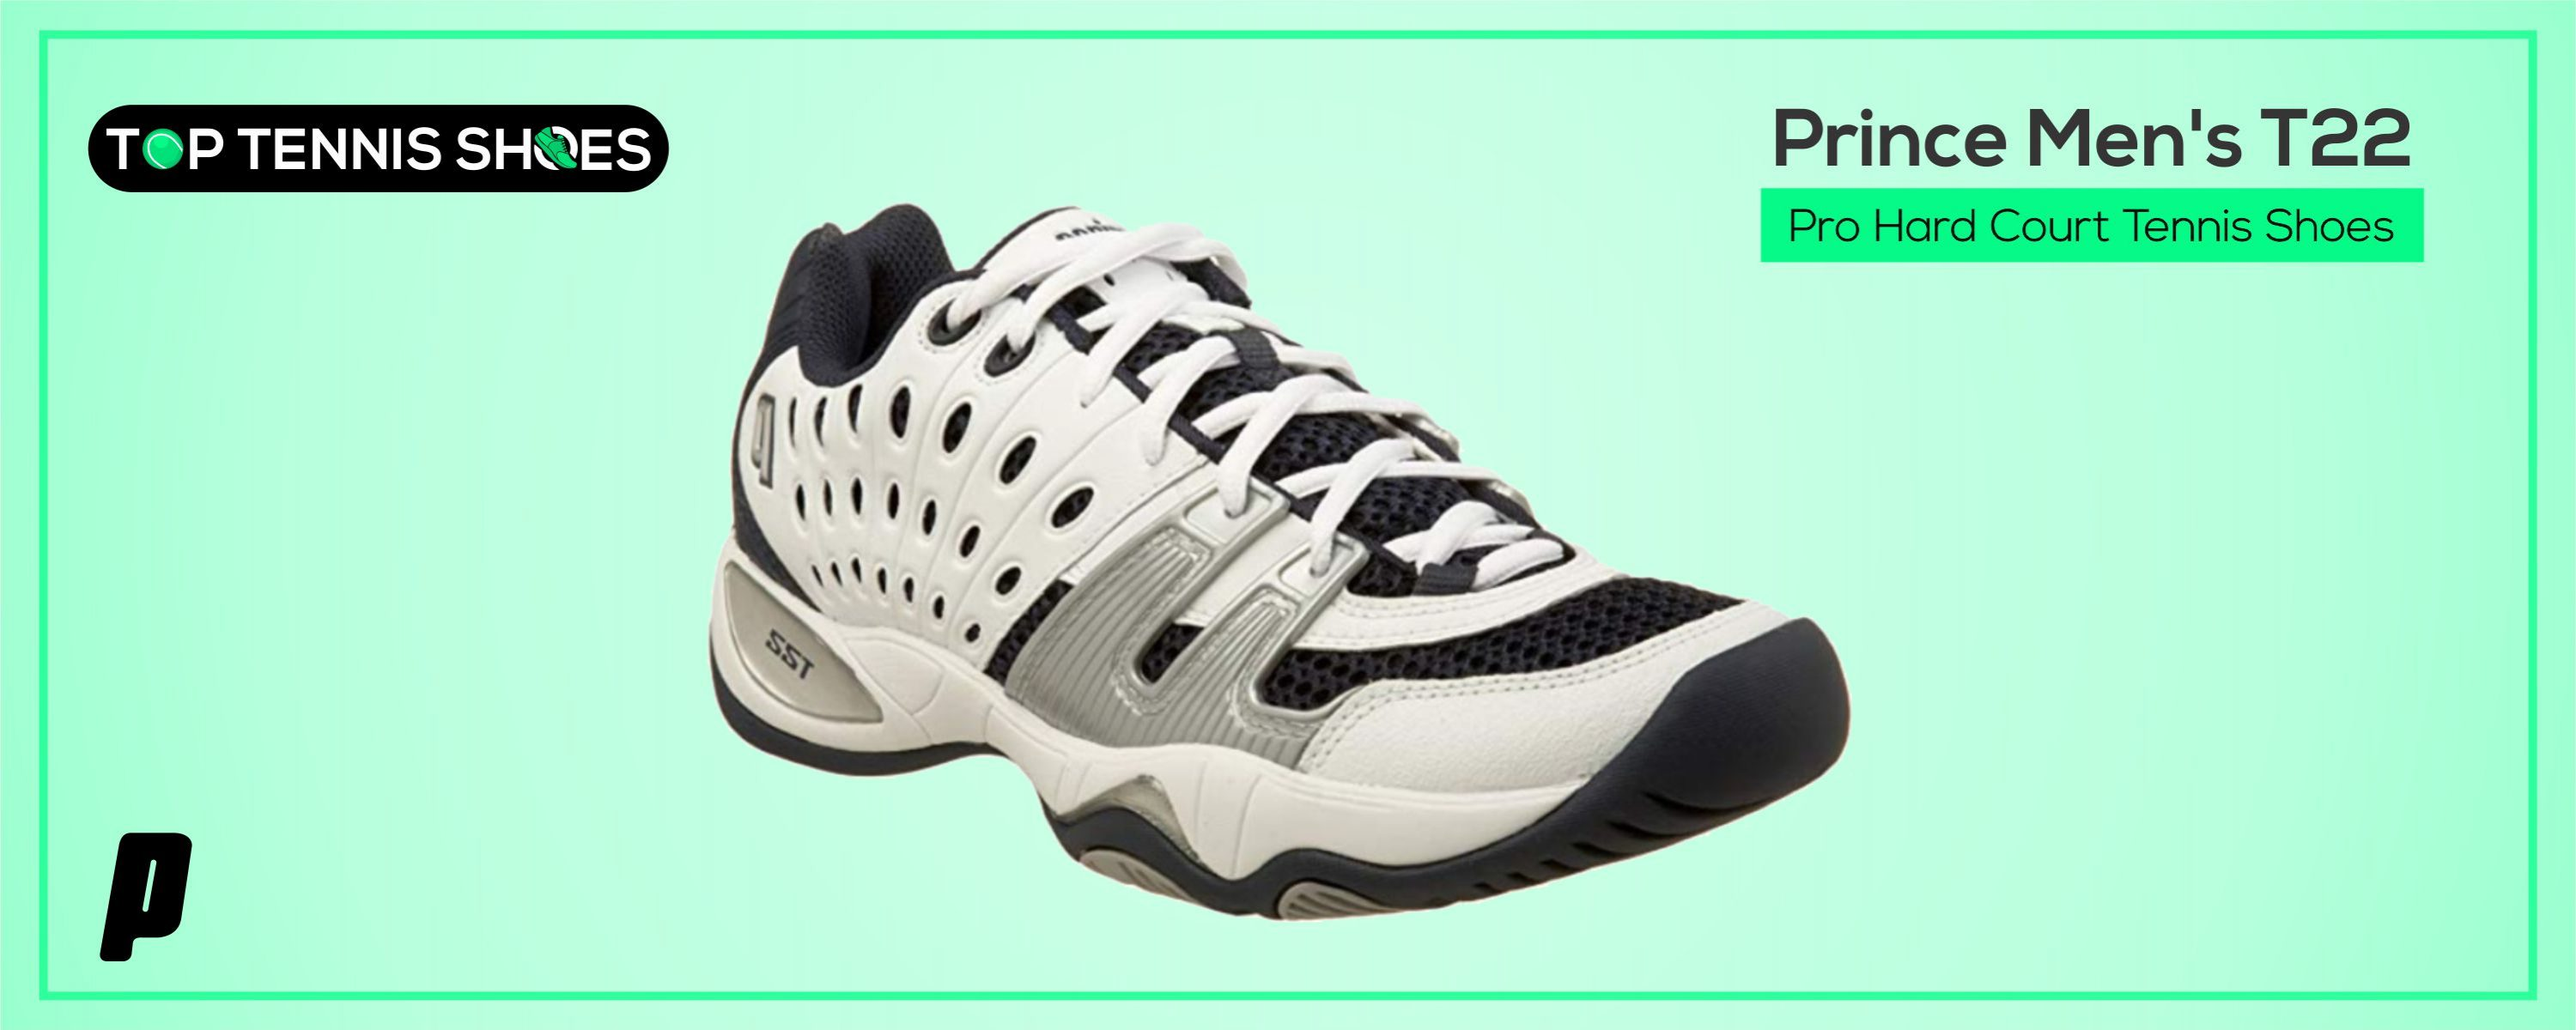 featured tennis shoes for hard court